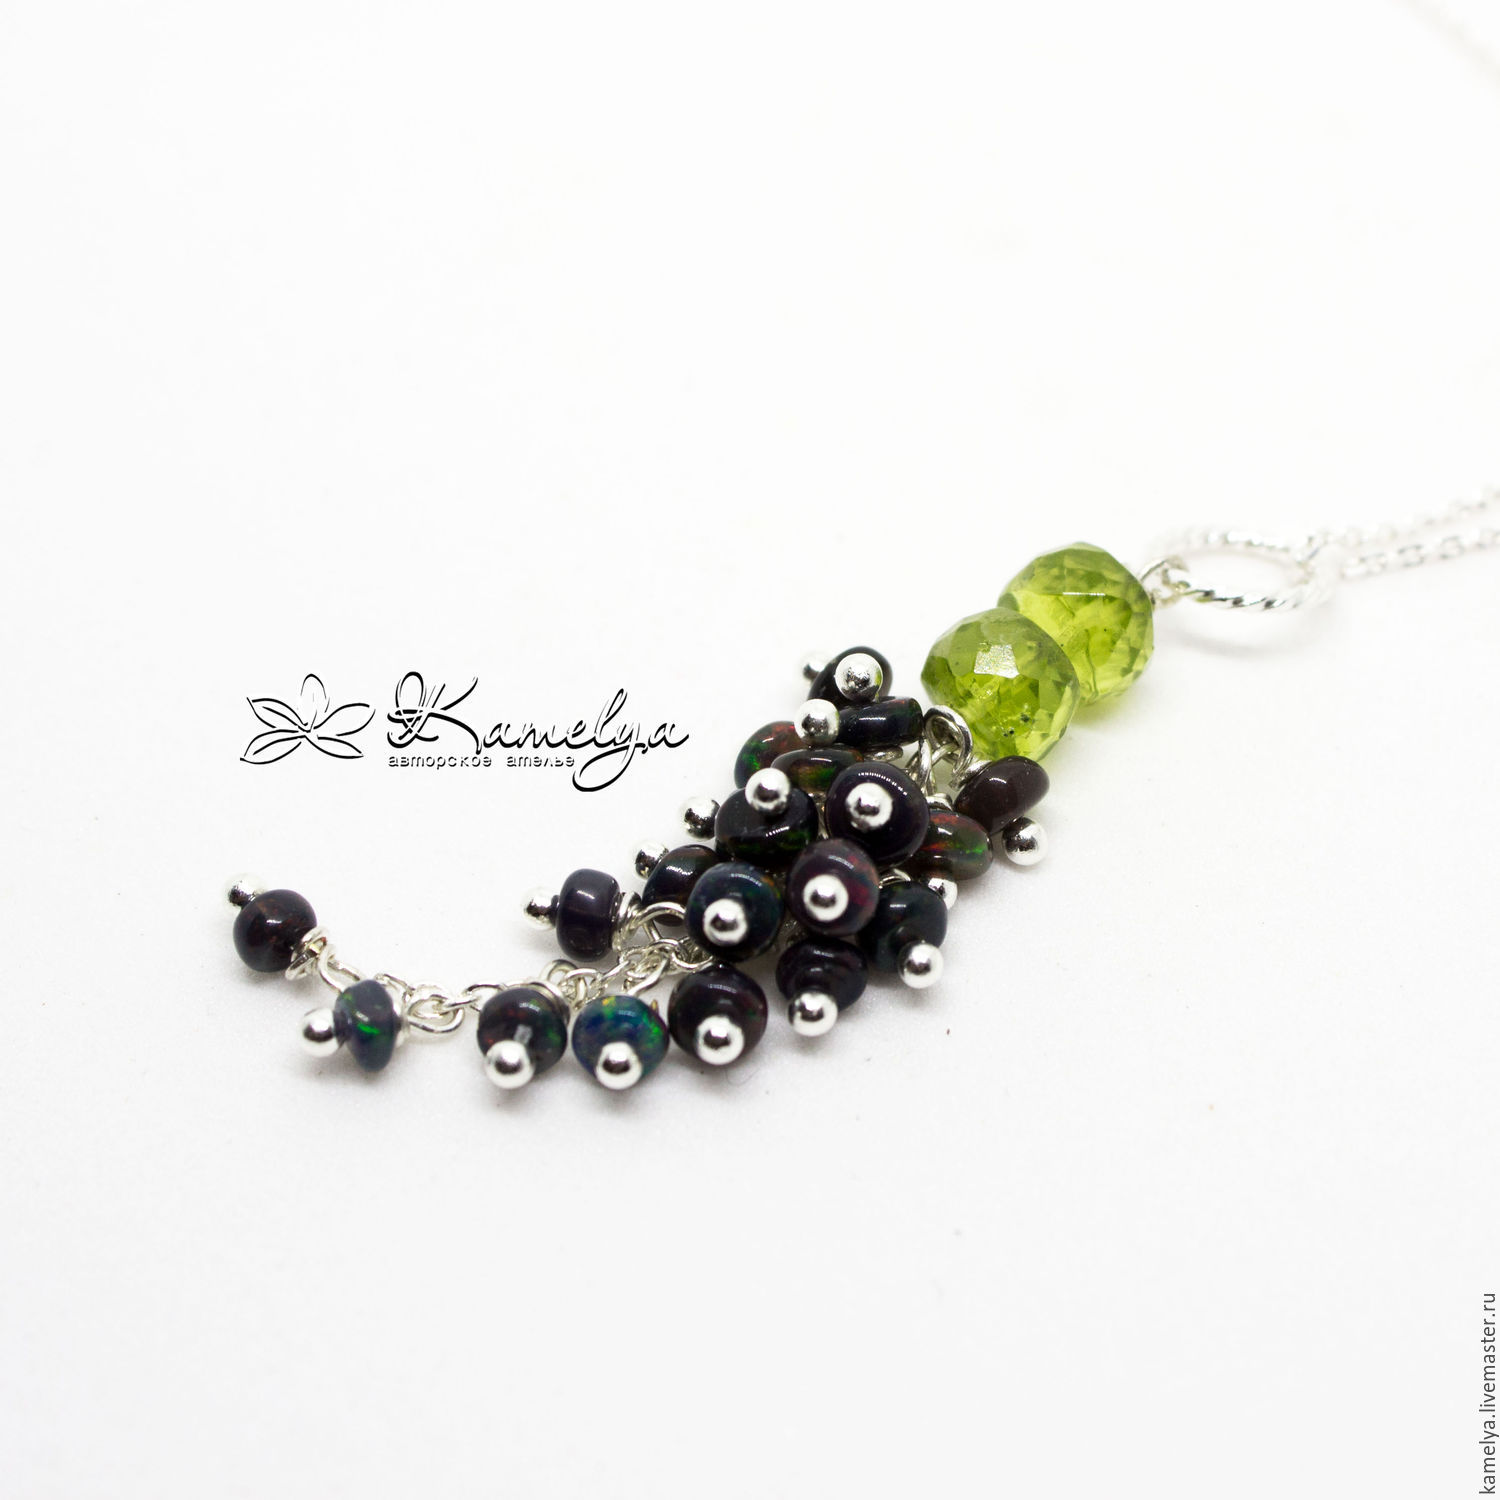 Pendant with black opal and chrysolite 'Luxury' 925 sterling silver, Pendants, Yaroslavl,  Фото №1